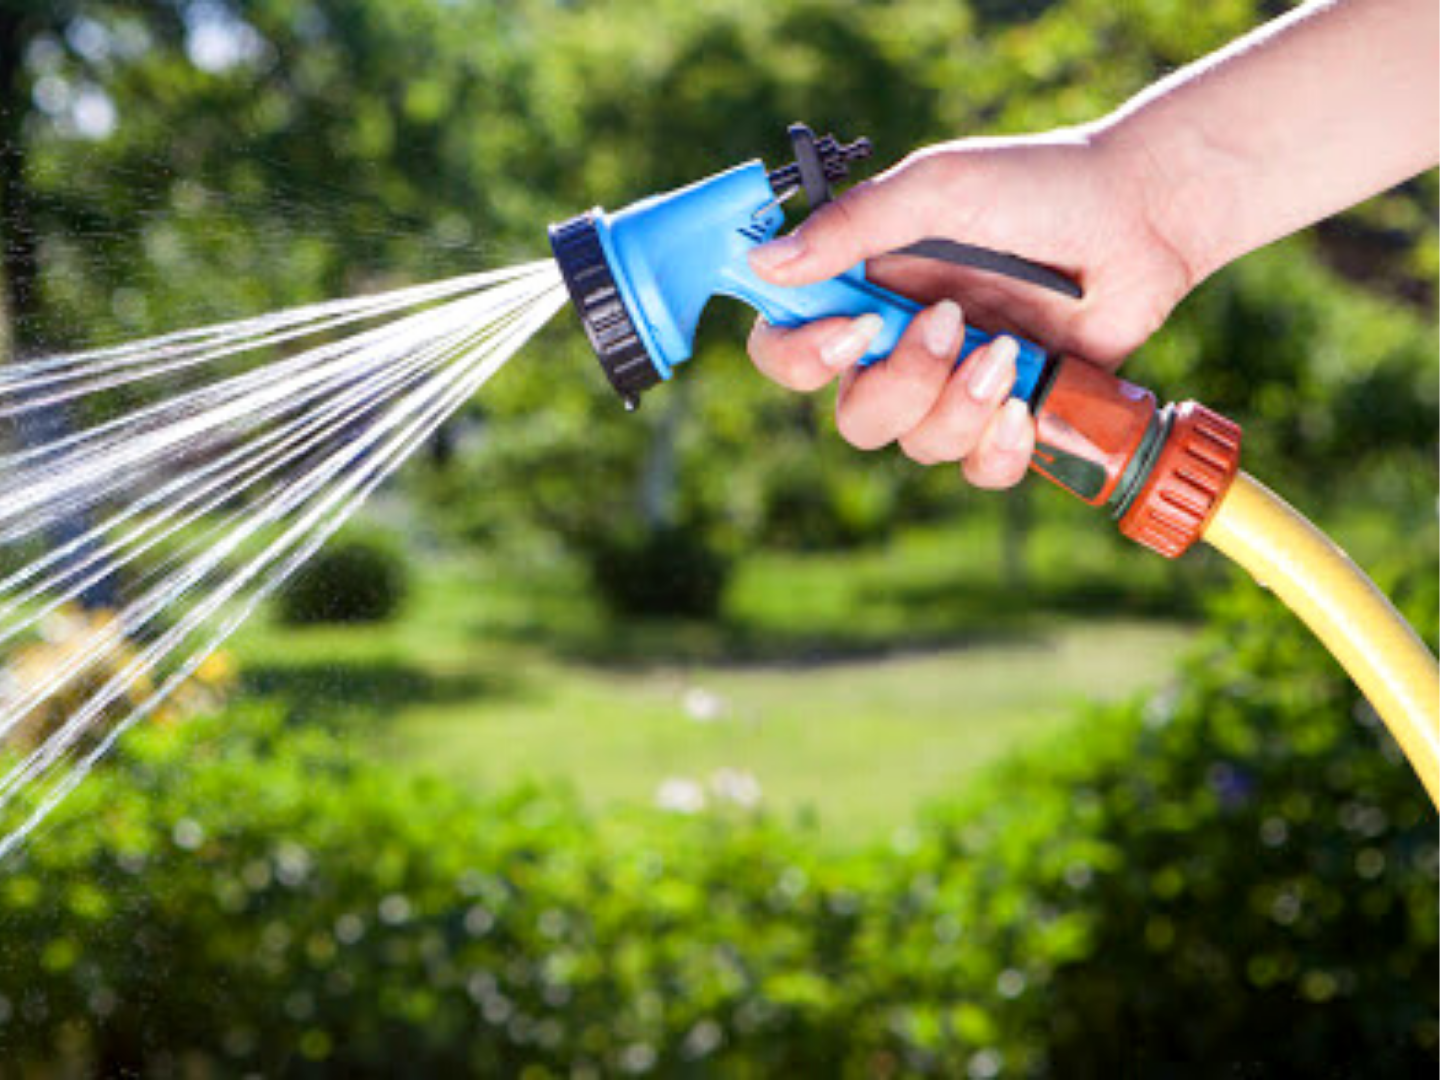 Watering from hose end sprayer